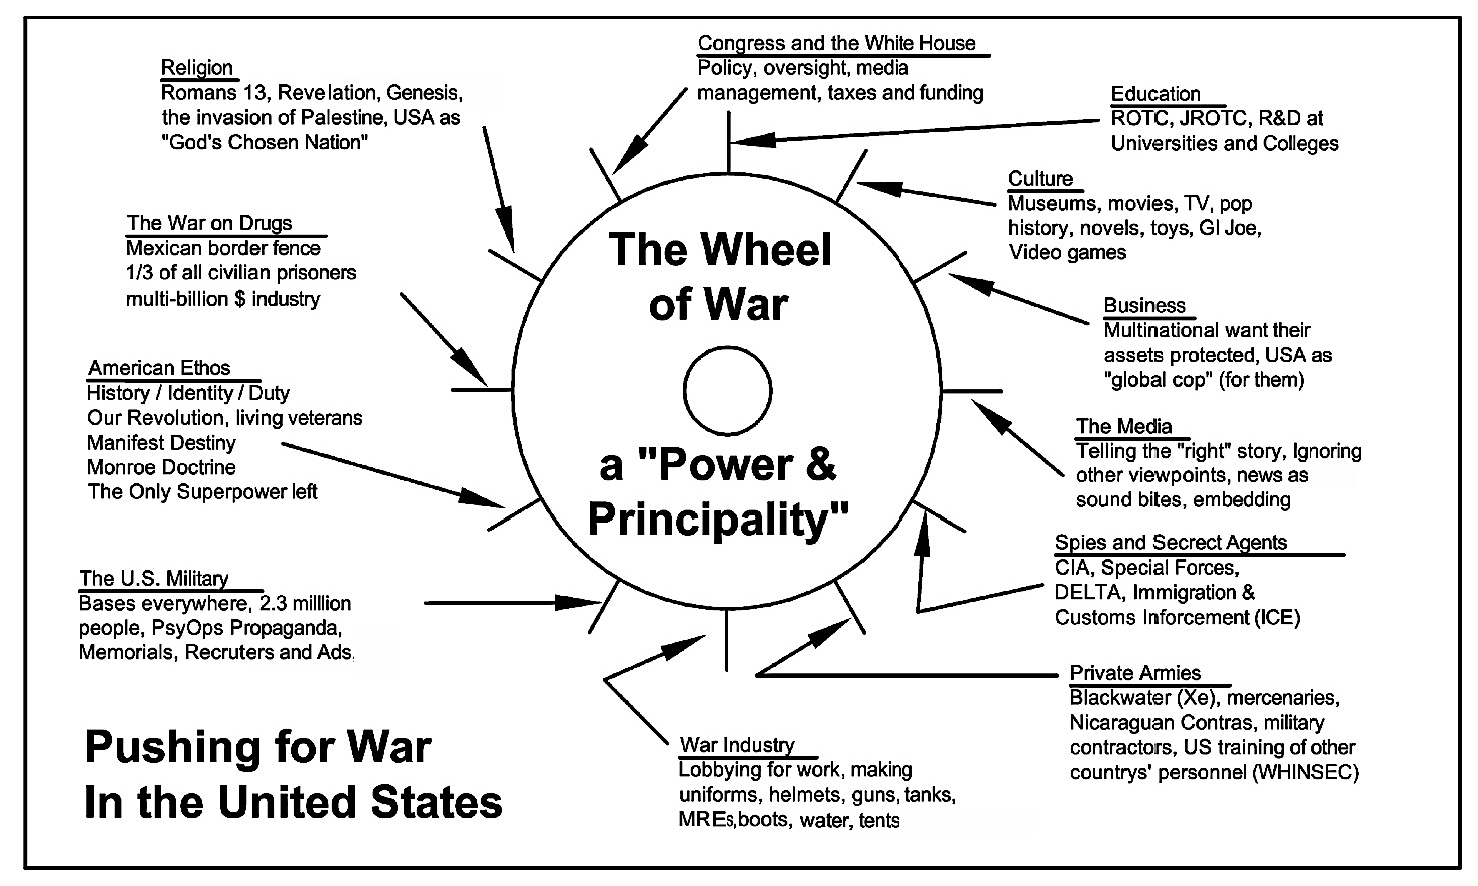 Thw Wheel of War - by Chuck Fager